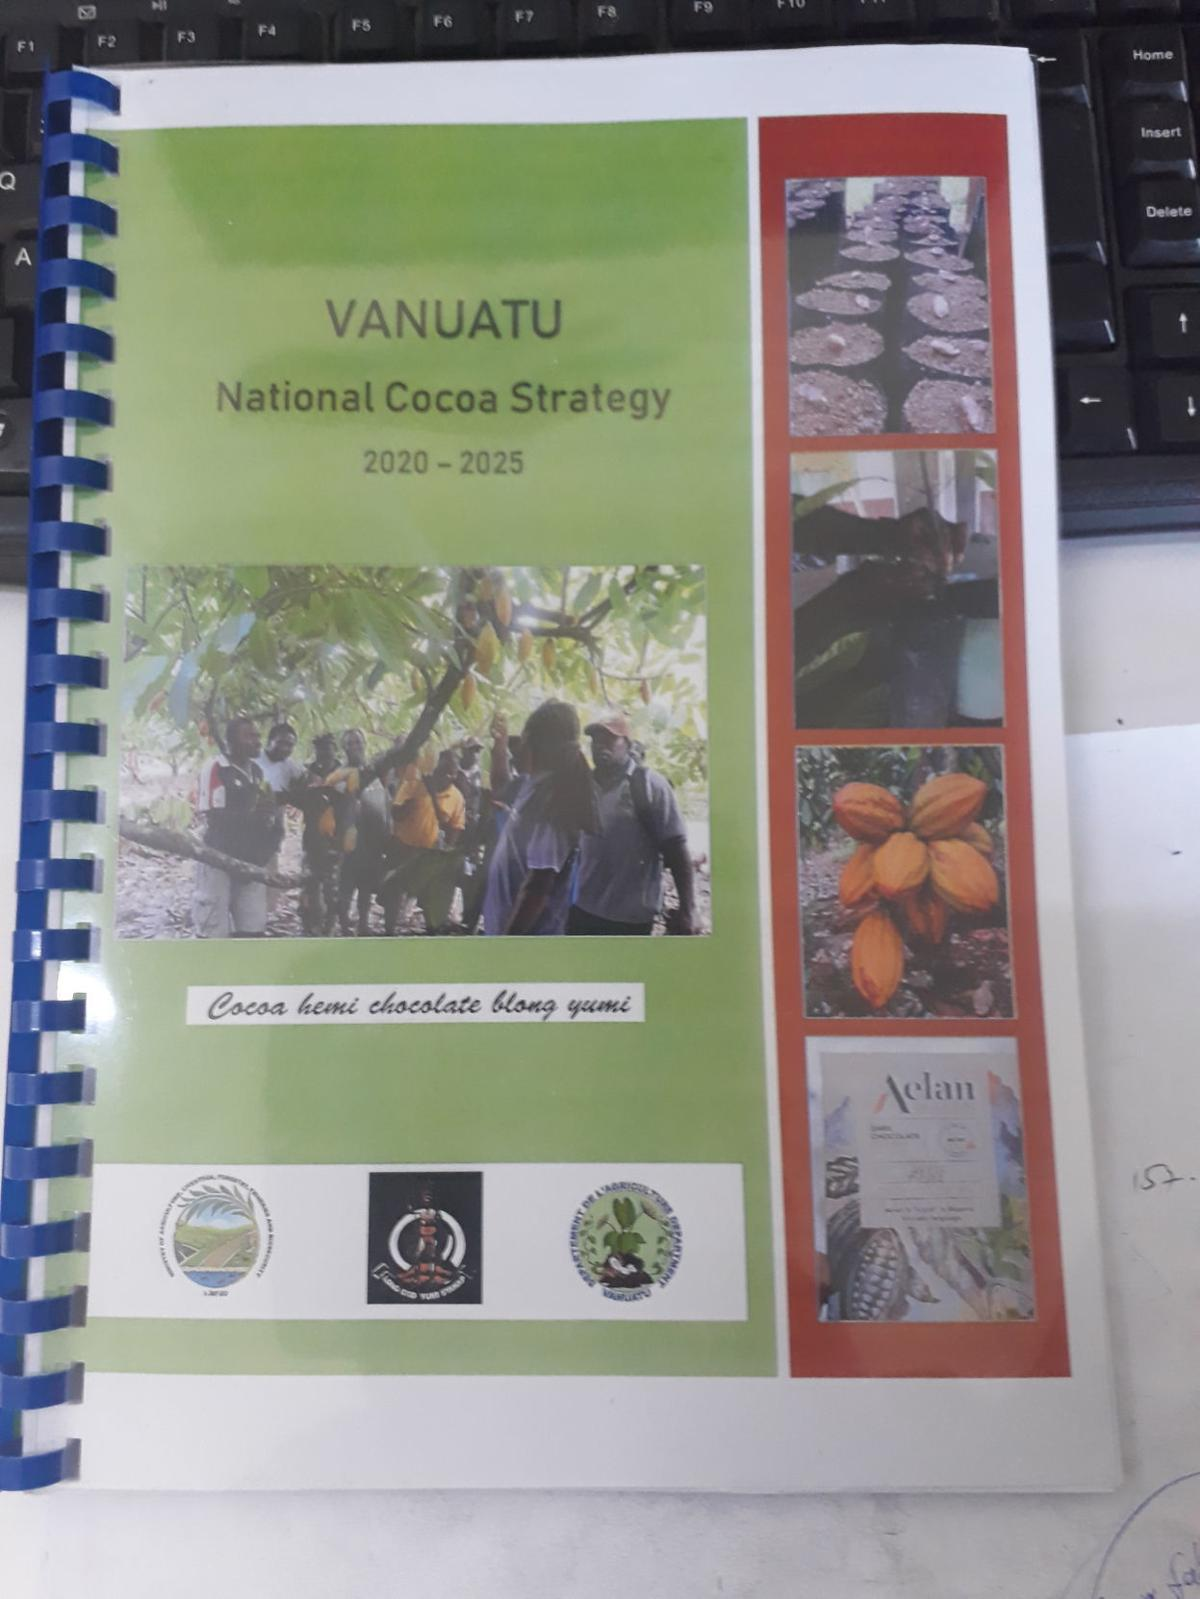 National Cocoa Strategy draft reviewed